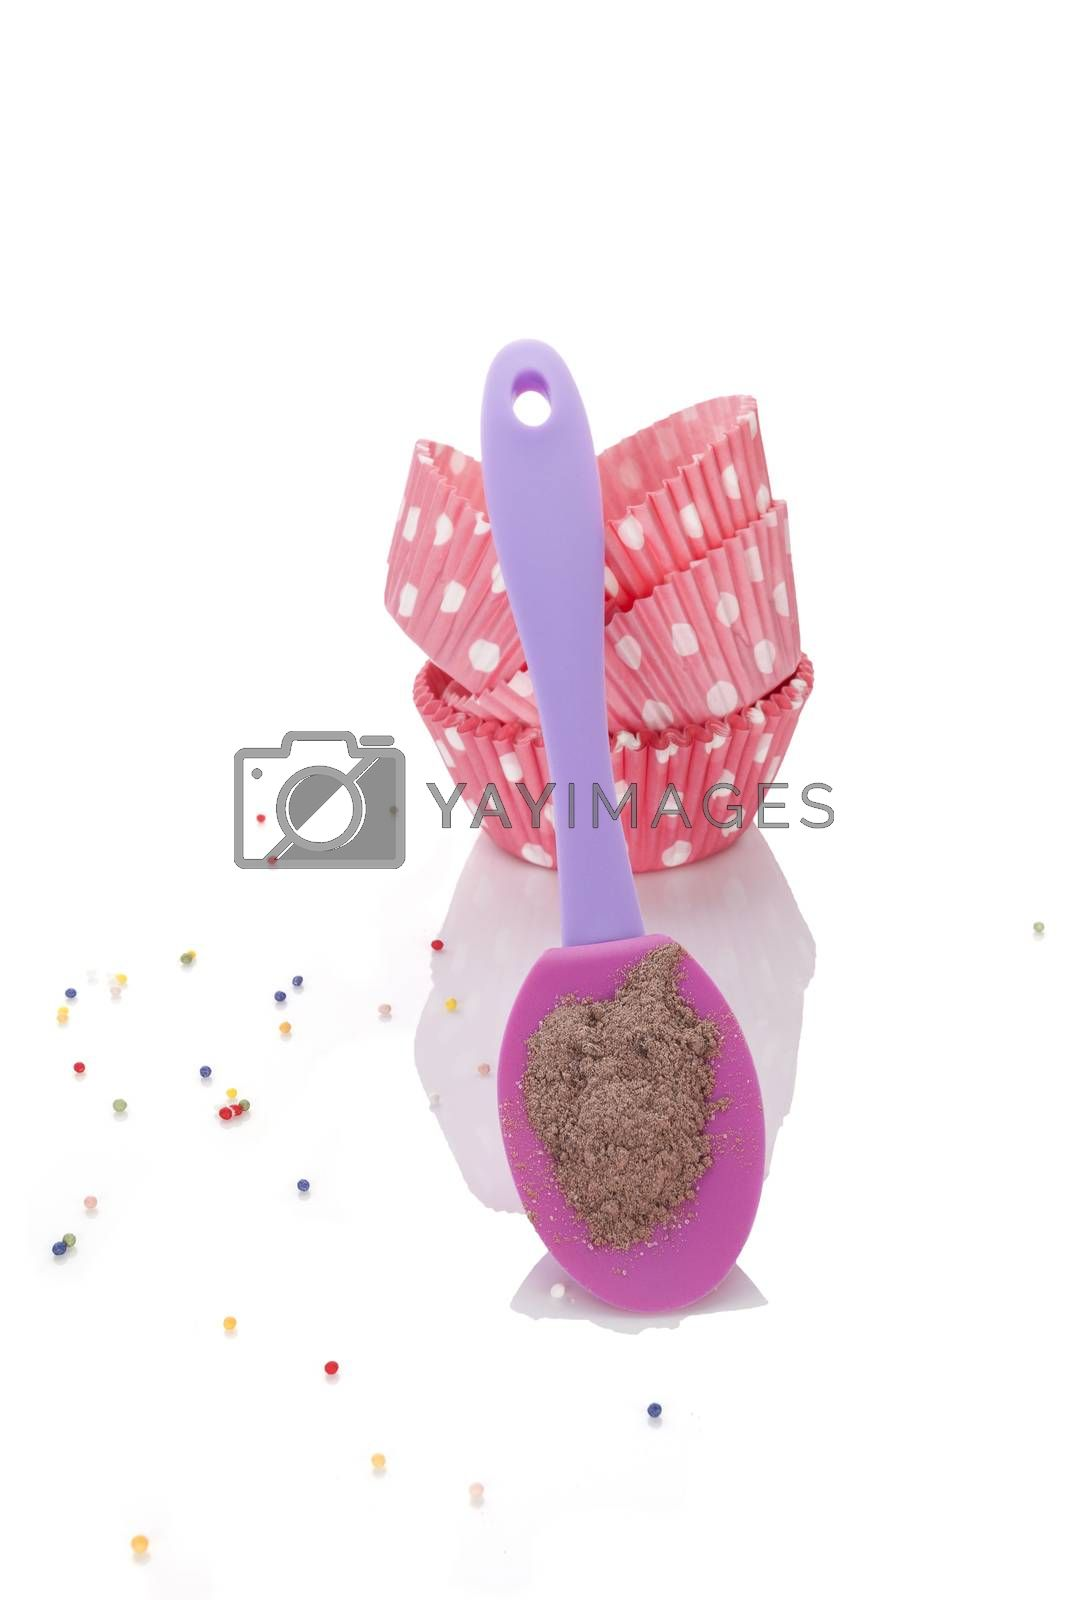 Baking cookies. Chocolate cookie mixture, baking forms and sweet garnish isolated on white background.